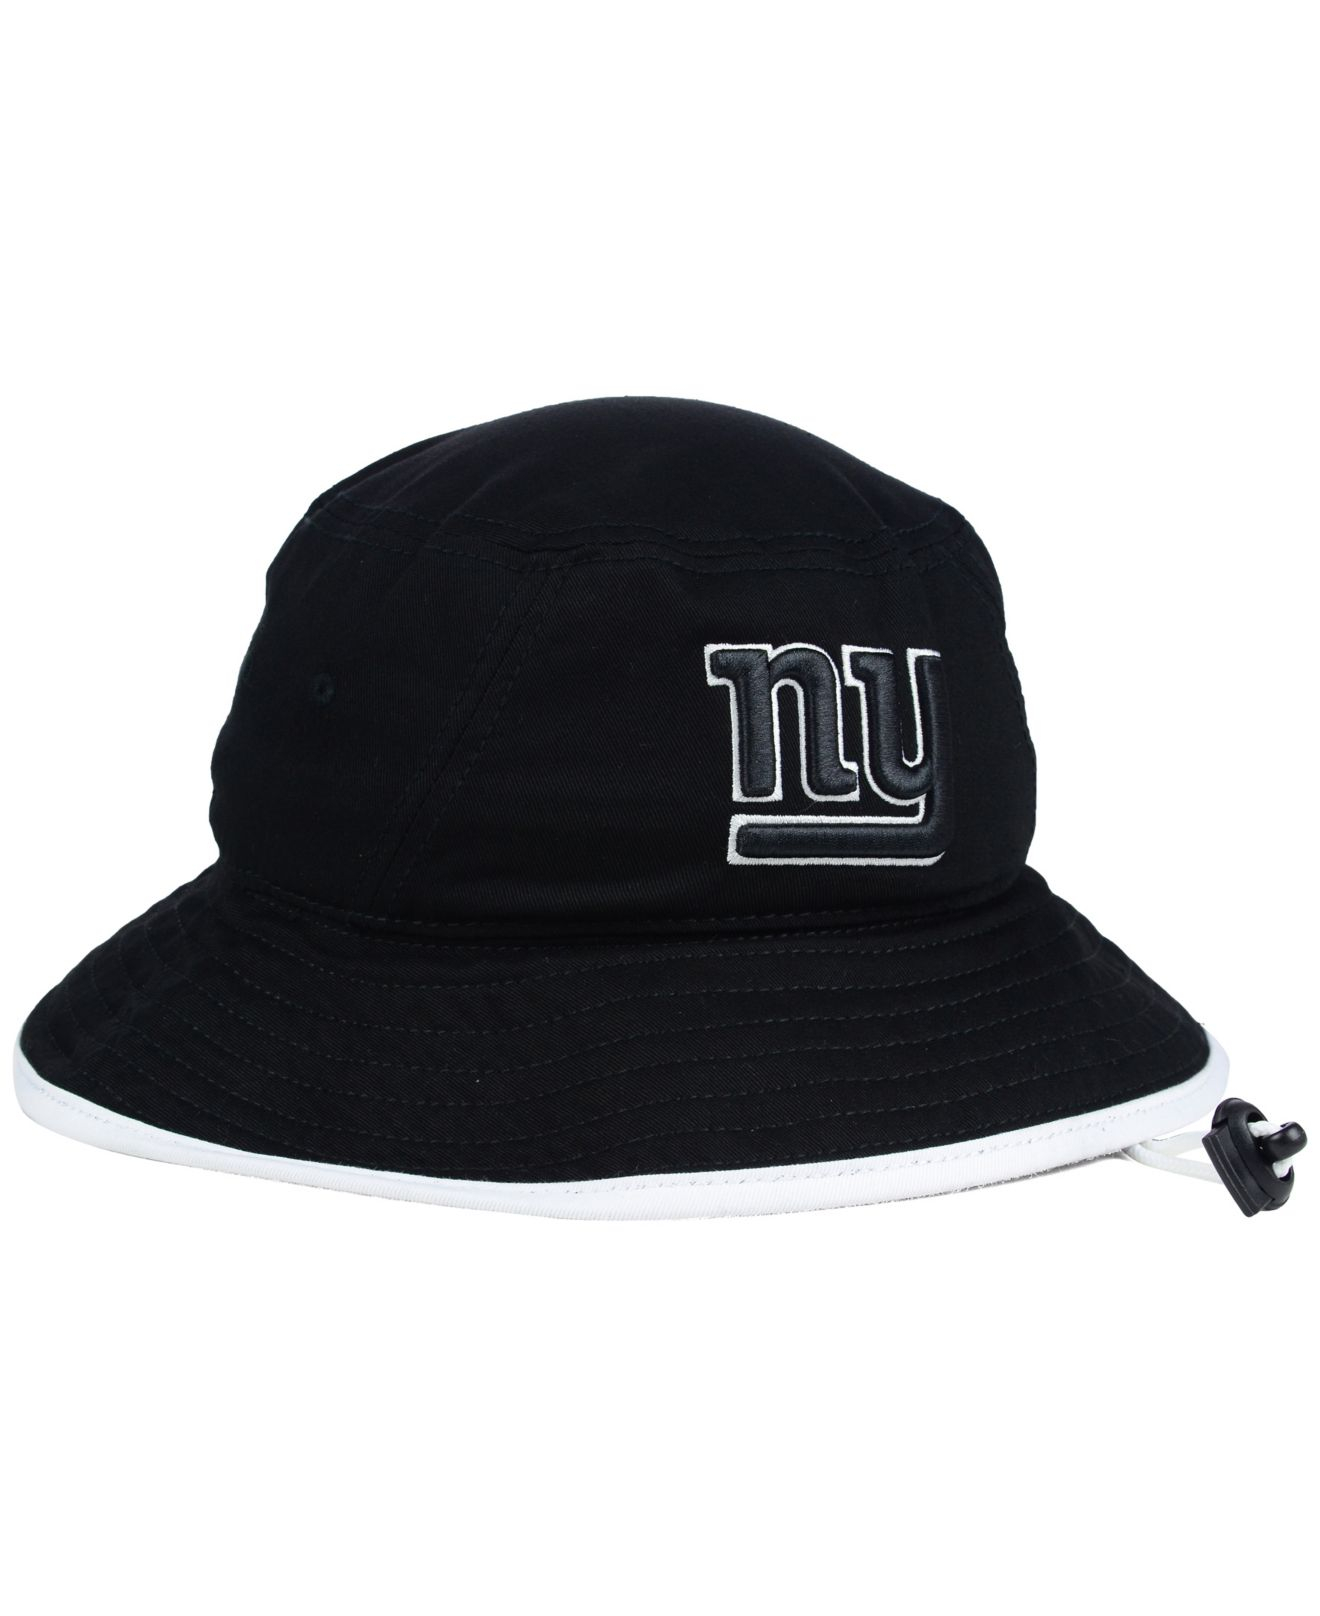 size 40 87f62 5cfb3 ... discount code for lyst ktz new york giants nfl black white bucket hat  in black c623c release date new york giants new era 59fifty ...